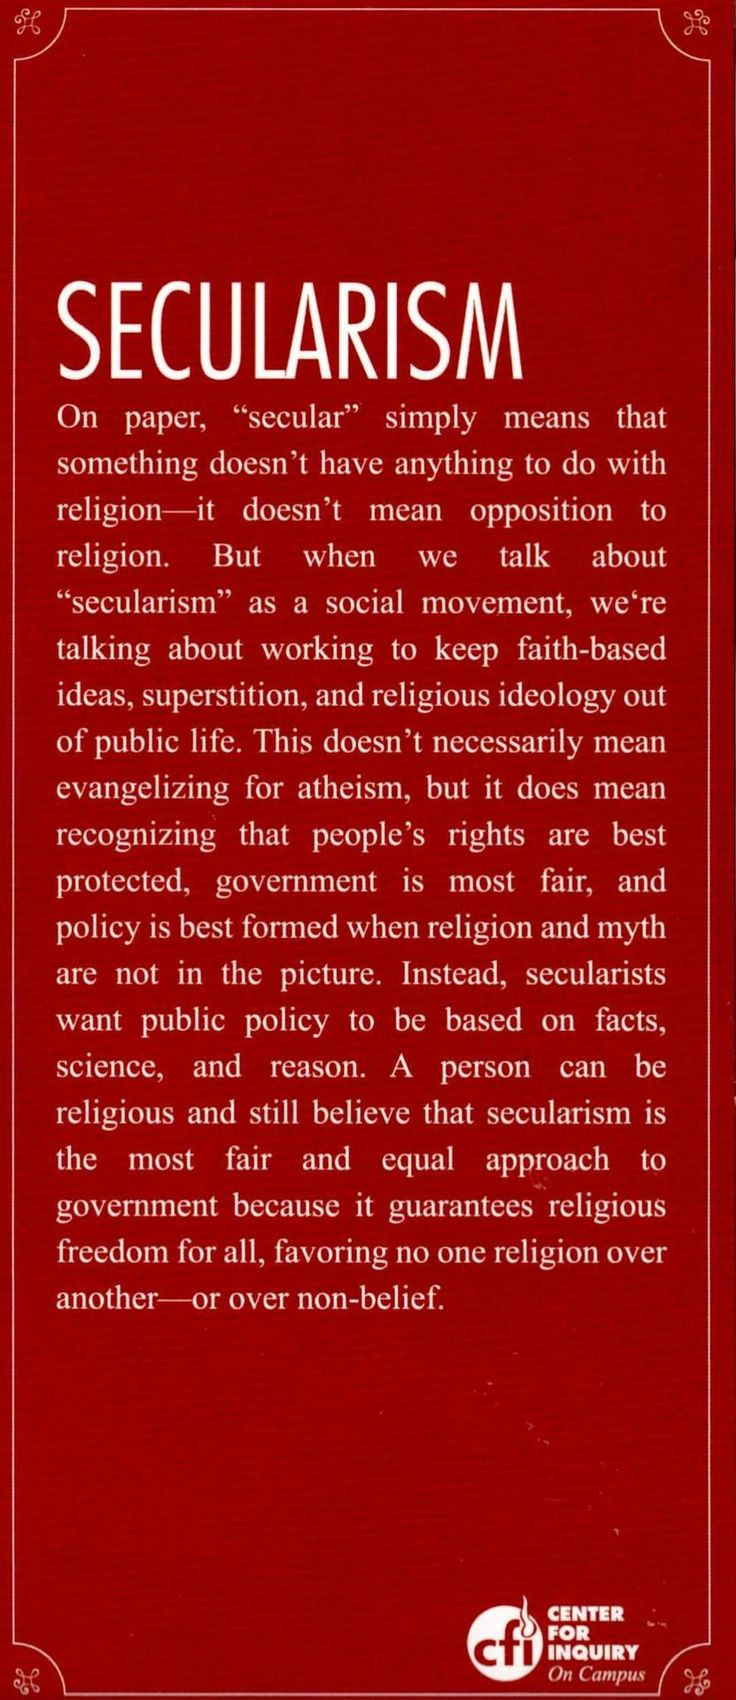 "(2012-11) Secularism ~ ""secular"" simply means that something doesn't have anything to do with religion (...) when we talk about ""secularism"" as a social movement, we're talking about working to keep faith-based ideas, superstition and religious ideology out of public life. (...) secularists want public policy to be based on facts, science and reason."